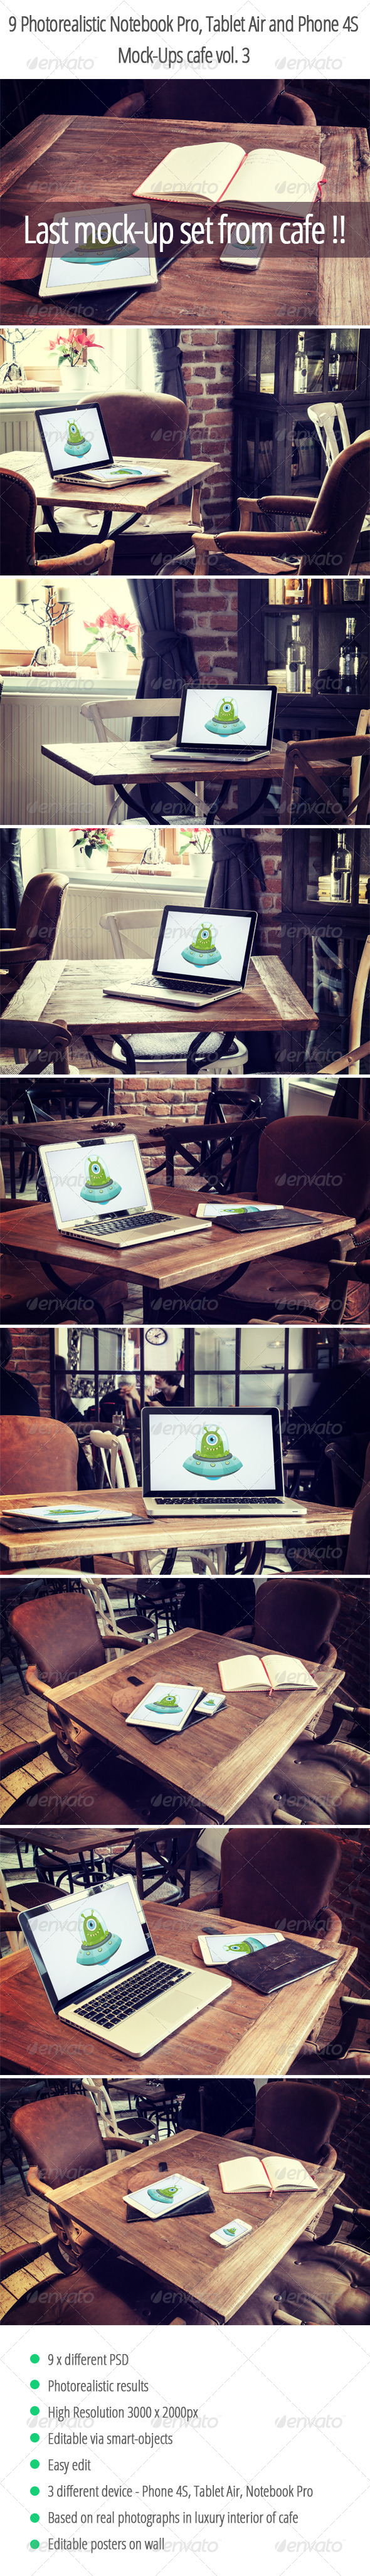 9 Photorealistic Device Mock-Ups in Cafe Vol.3 - Displays Product Mock-Ups